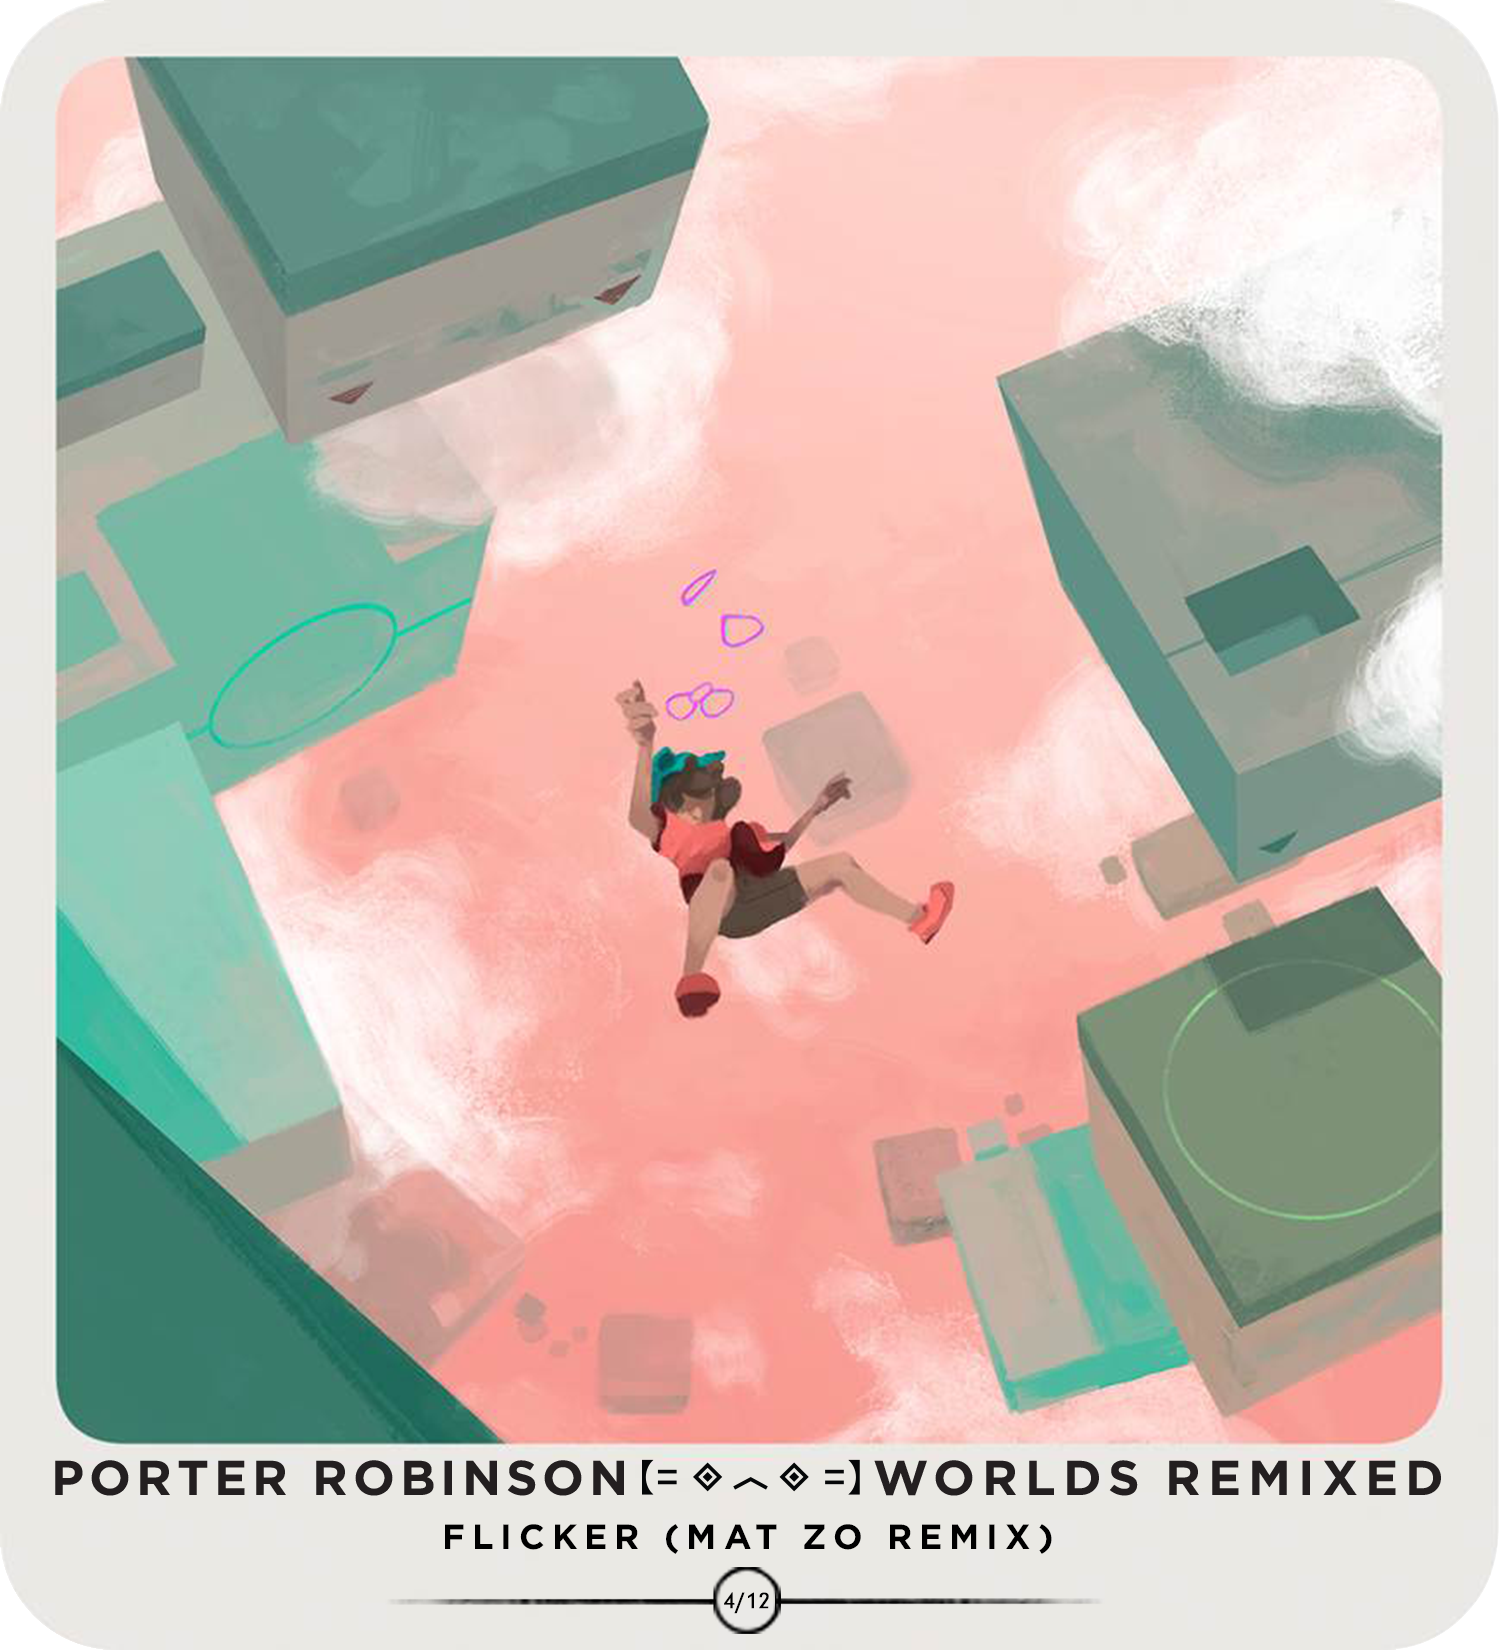 Talking To Porter Robinson About The Fantastical Artwork